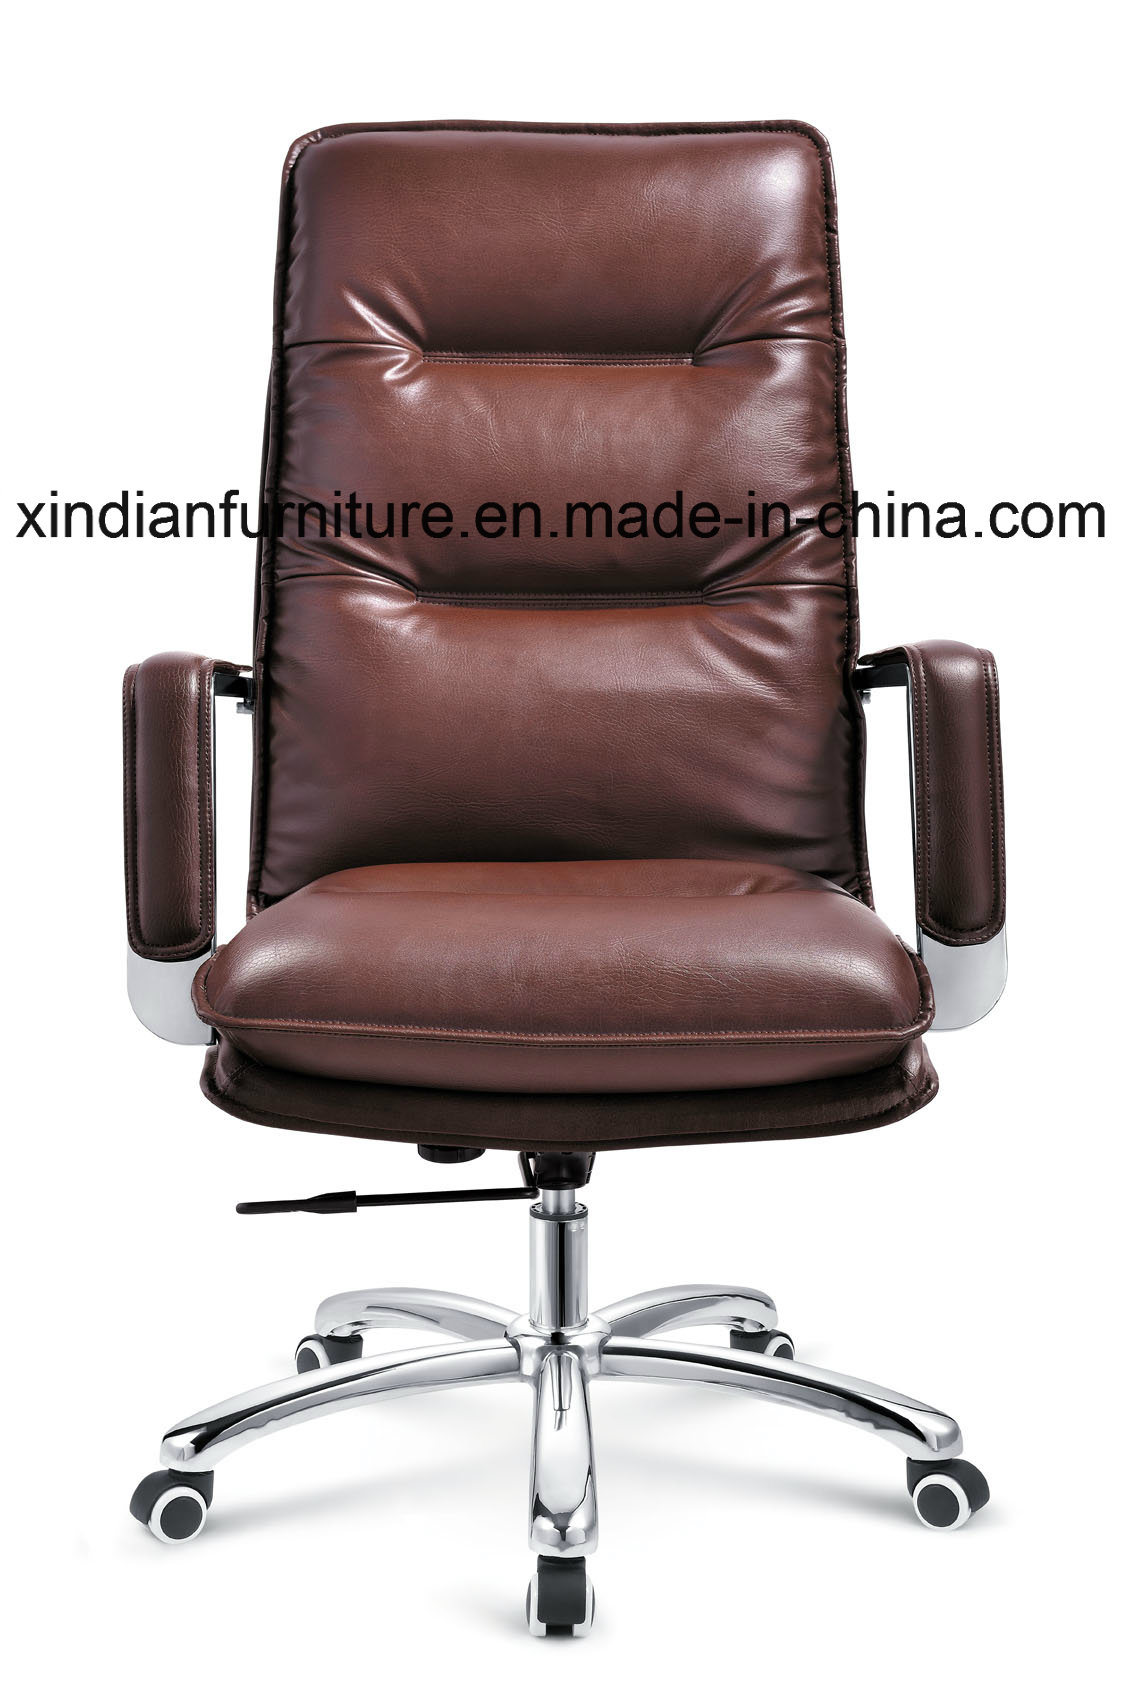 Fashion Executive Hot-Selling Office Furniture/Chair (A8068)